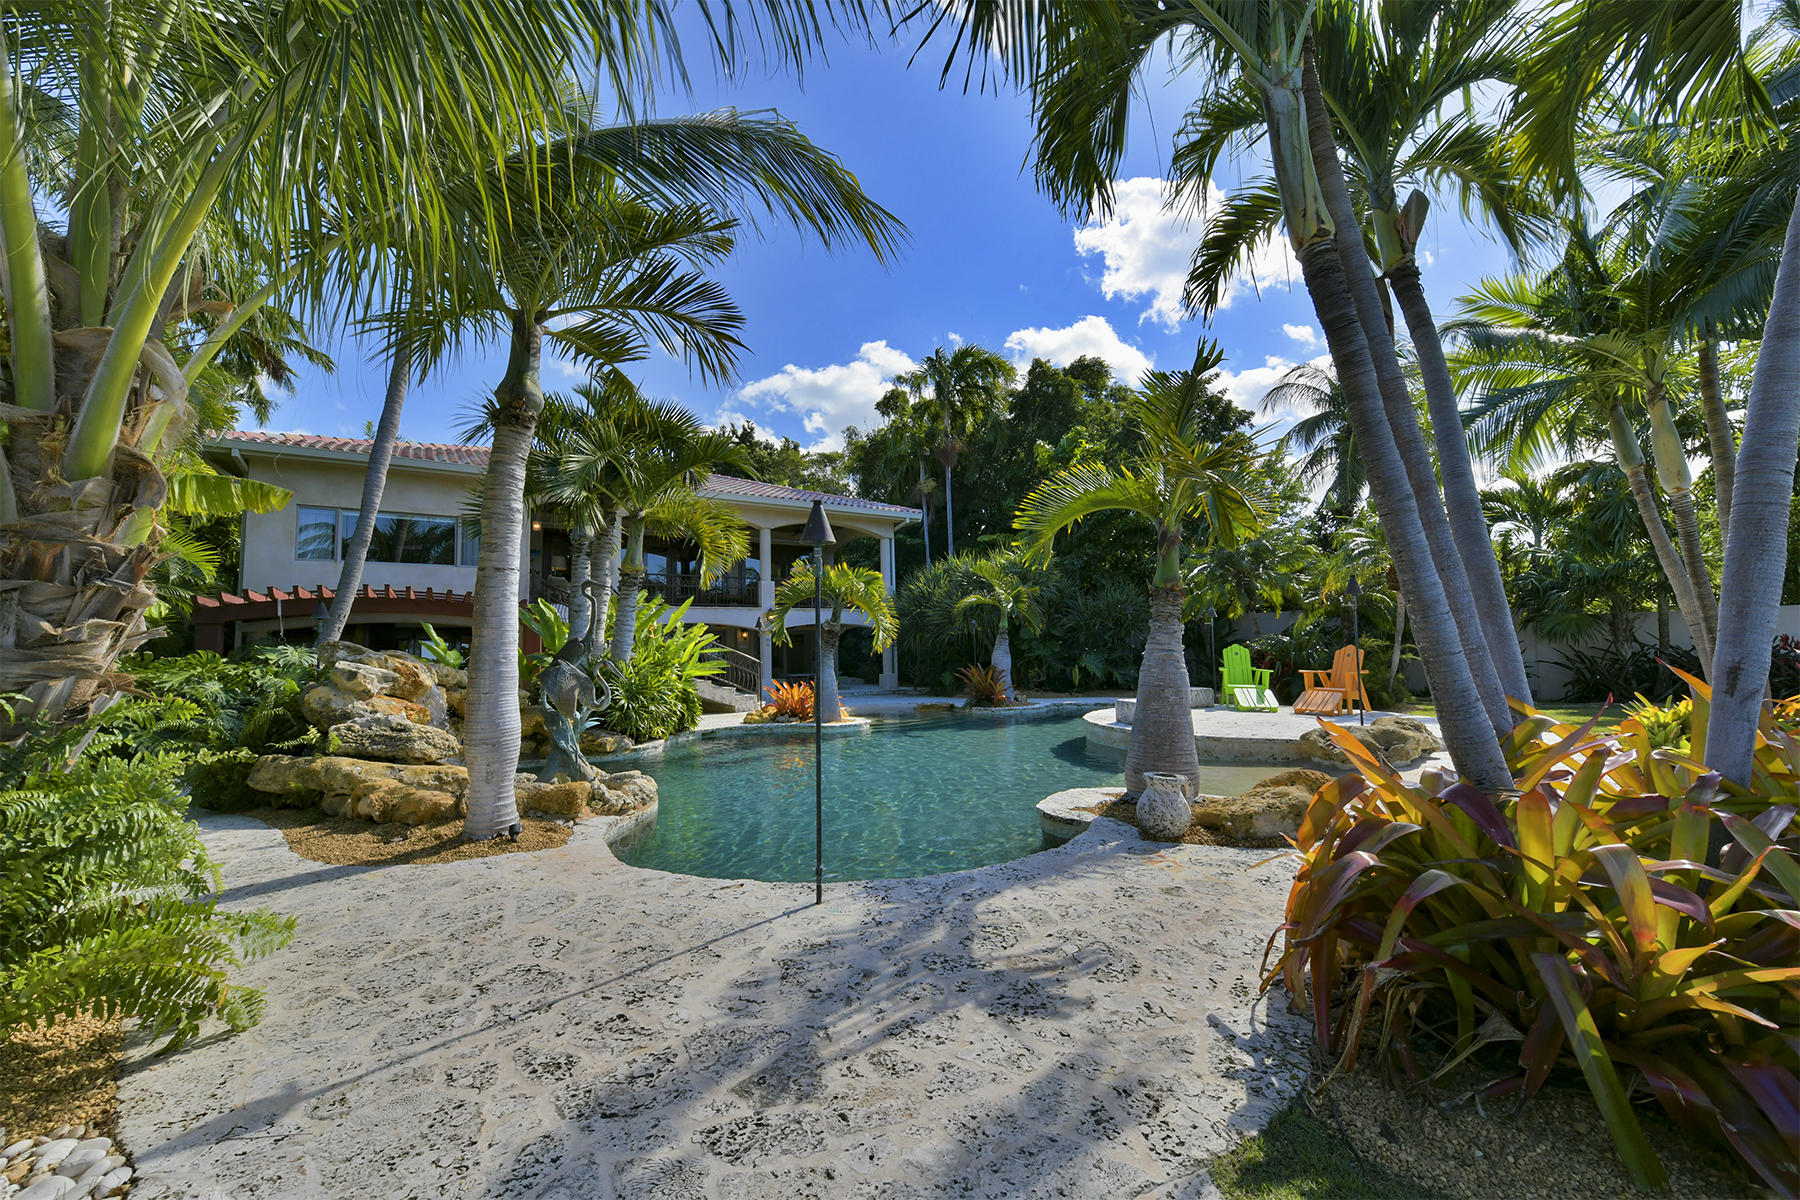 Single Family Homes for Sale at 162 Key Heights Drive, Islamorada, FL 162 Key Heights Drive Islamorada, Florida 33070 United States